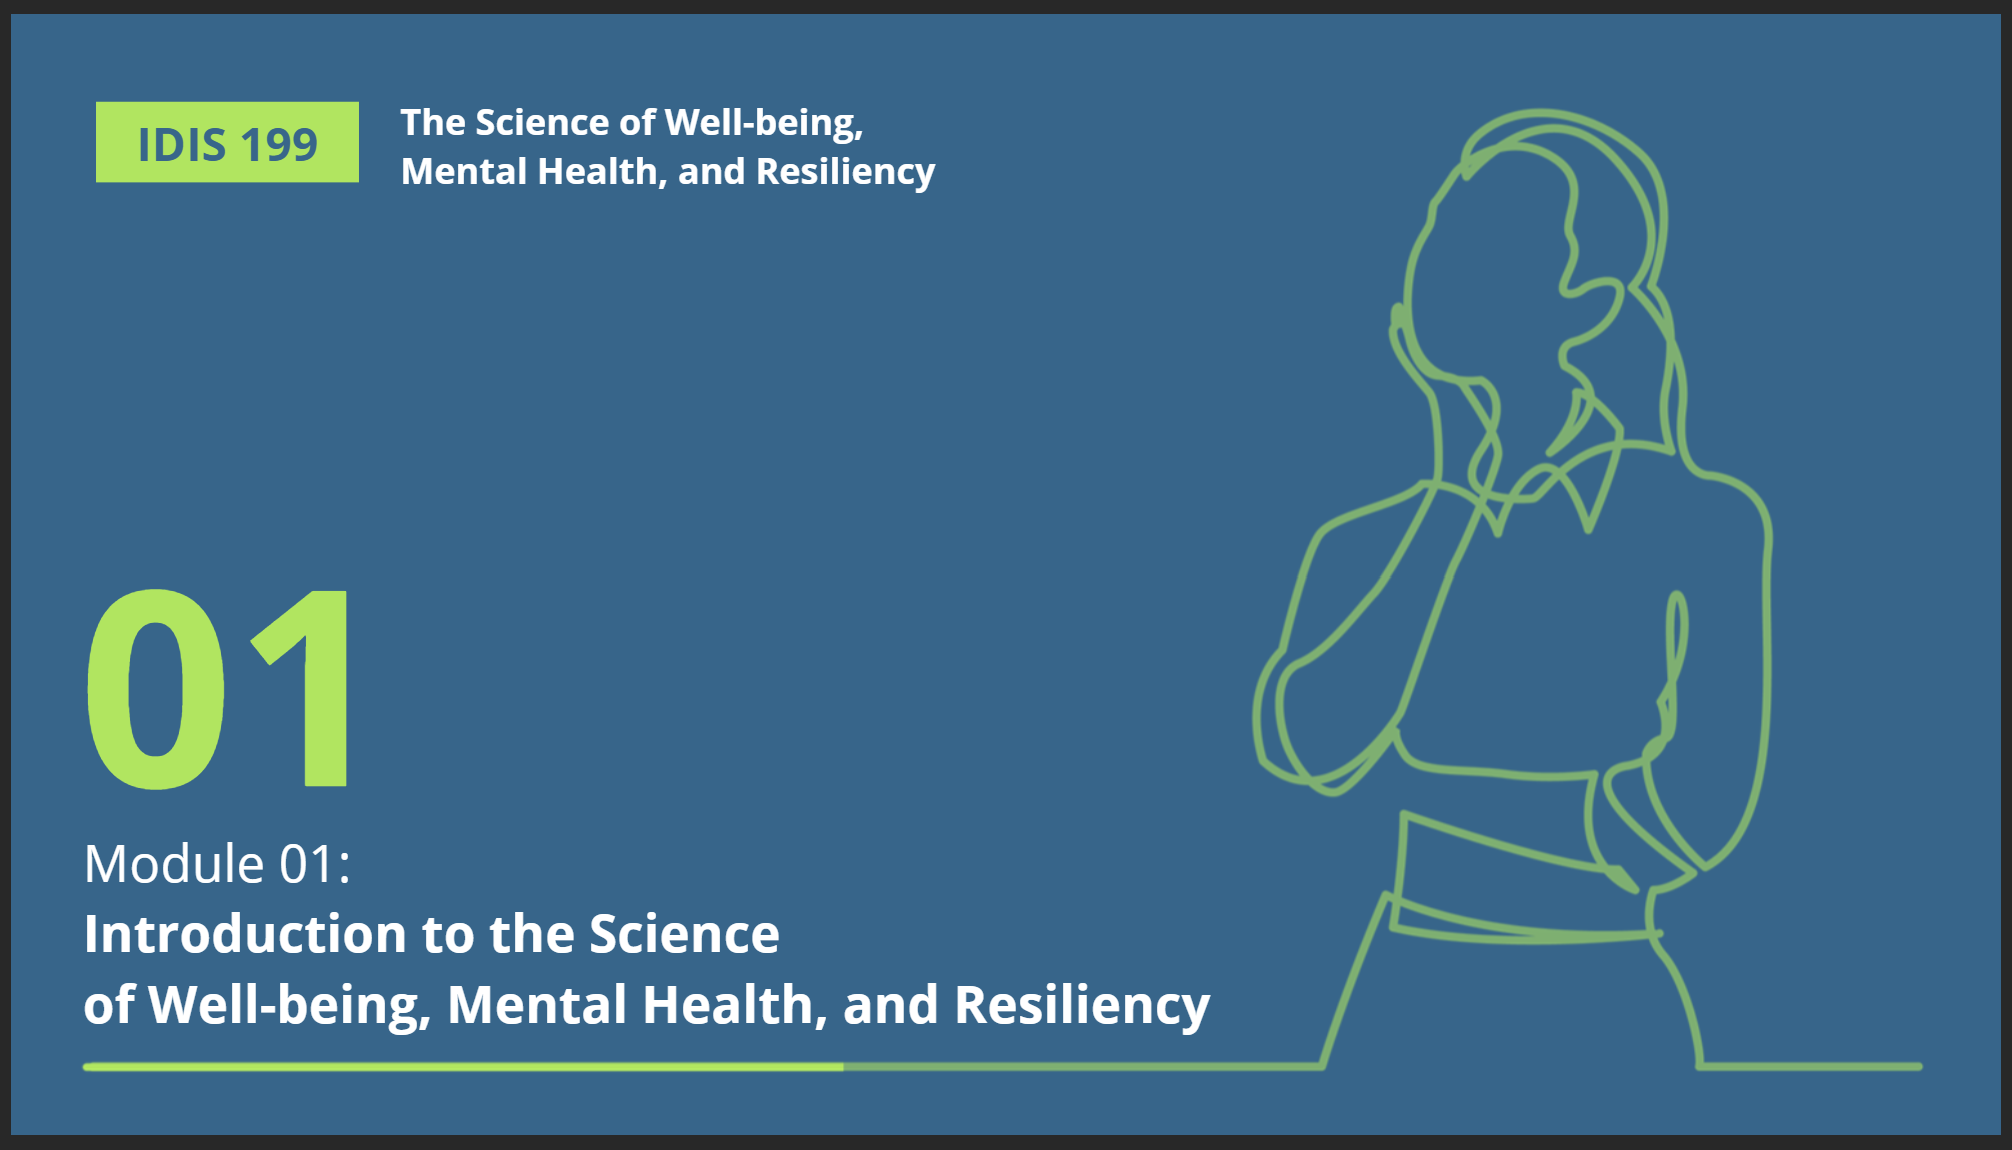 IDIS 199 The Science of Well-being, Mental Health, and Resiliency